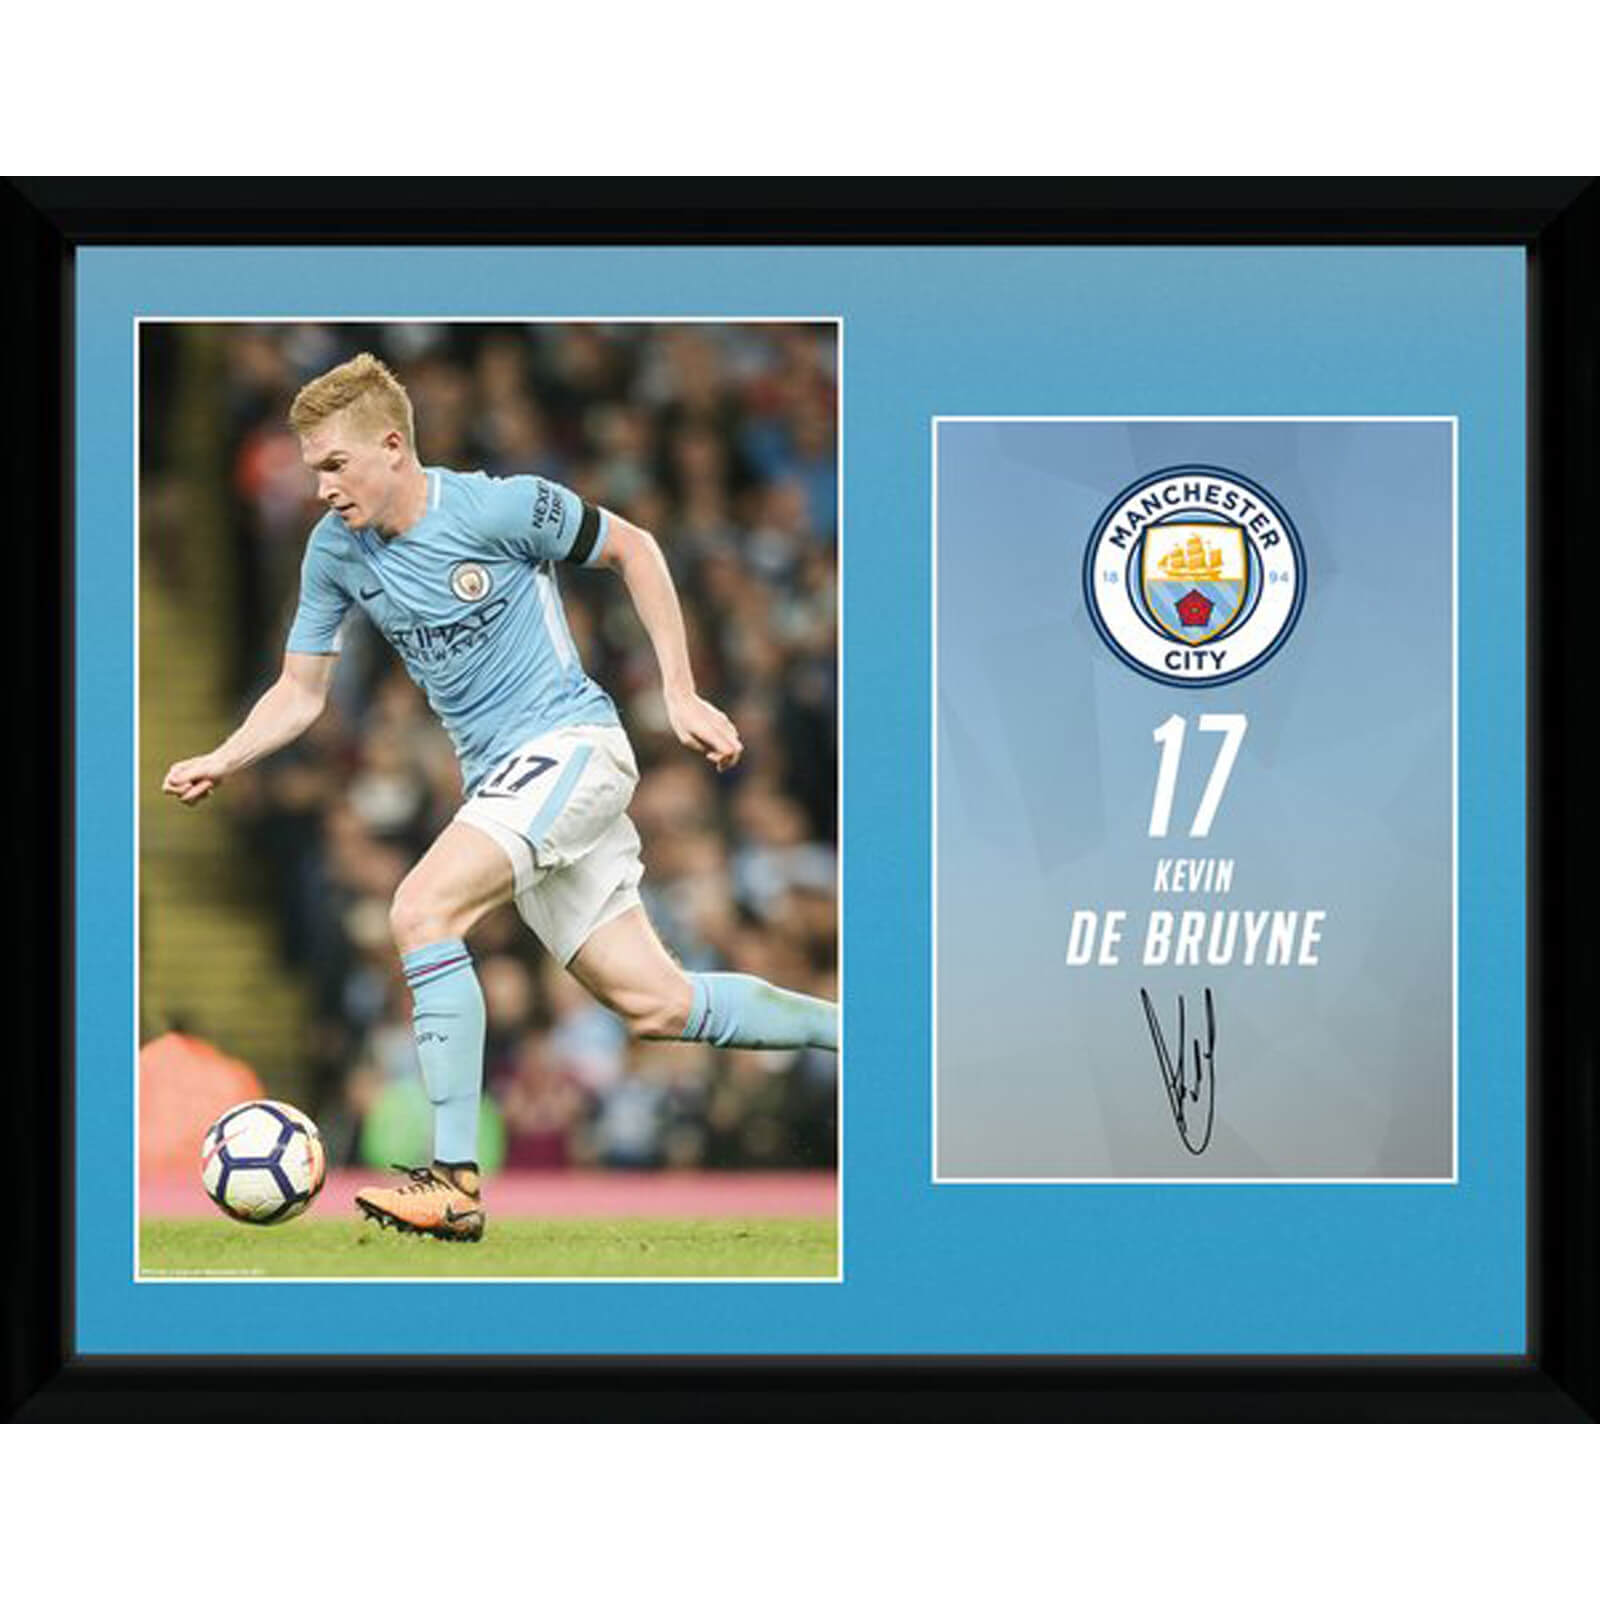 Manchester City De Bruyne 17/18 12 x 16 Inches Framed Photograph